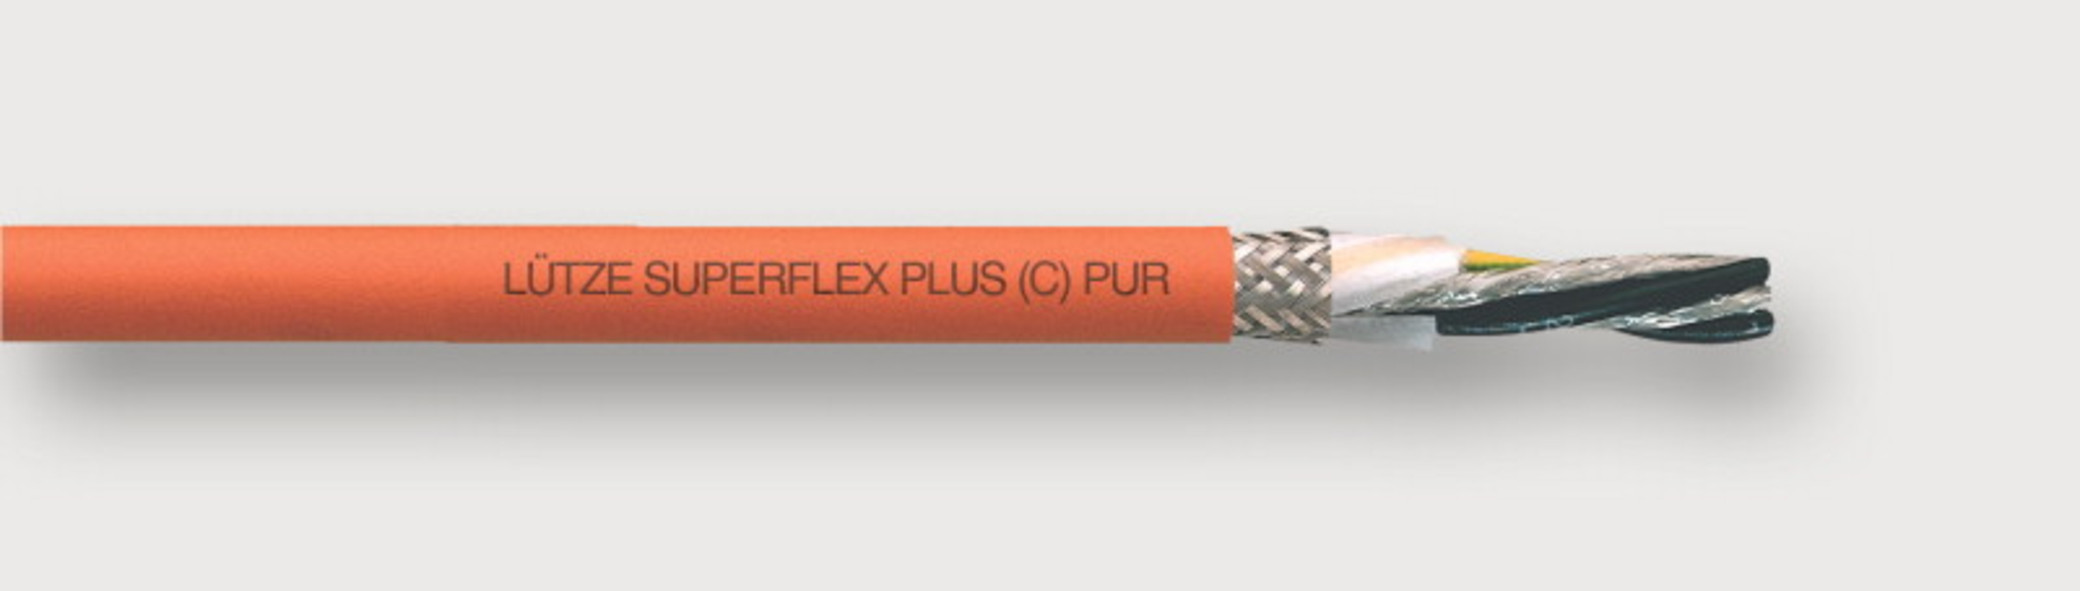 111467 - LÜTZE SUPERFLEX® PLUS M (C) PUR SERVO 0.6/1 kV High Flexing Motor Cable for Siemens and other systems For highest requirements